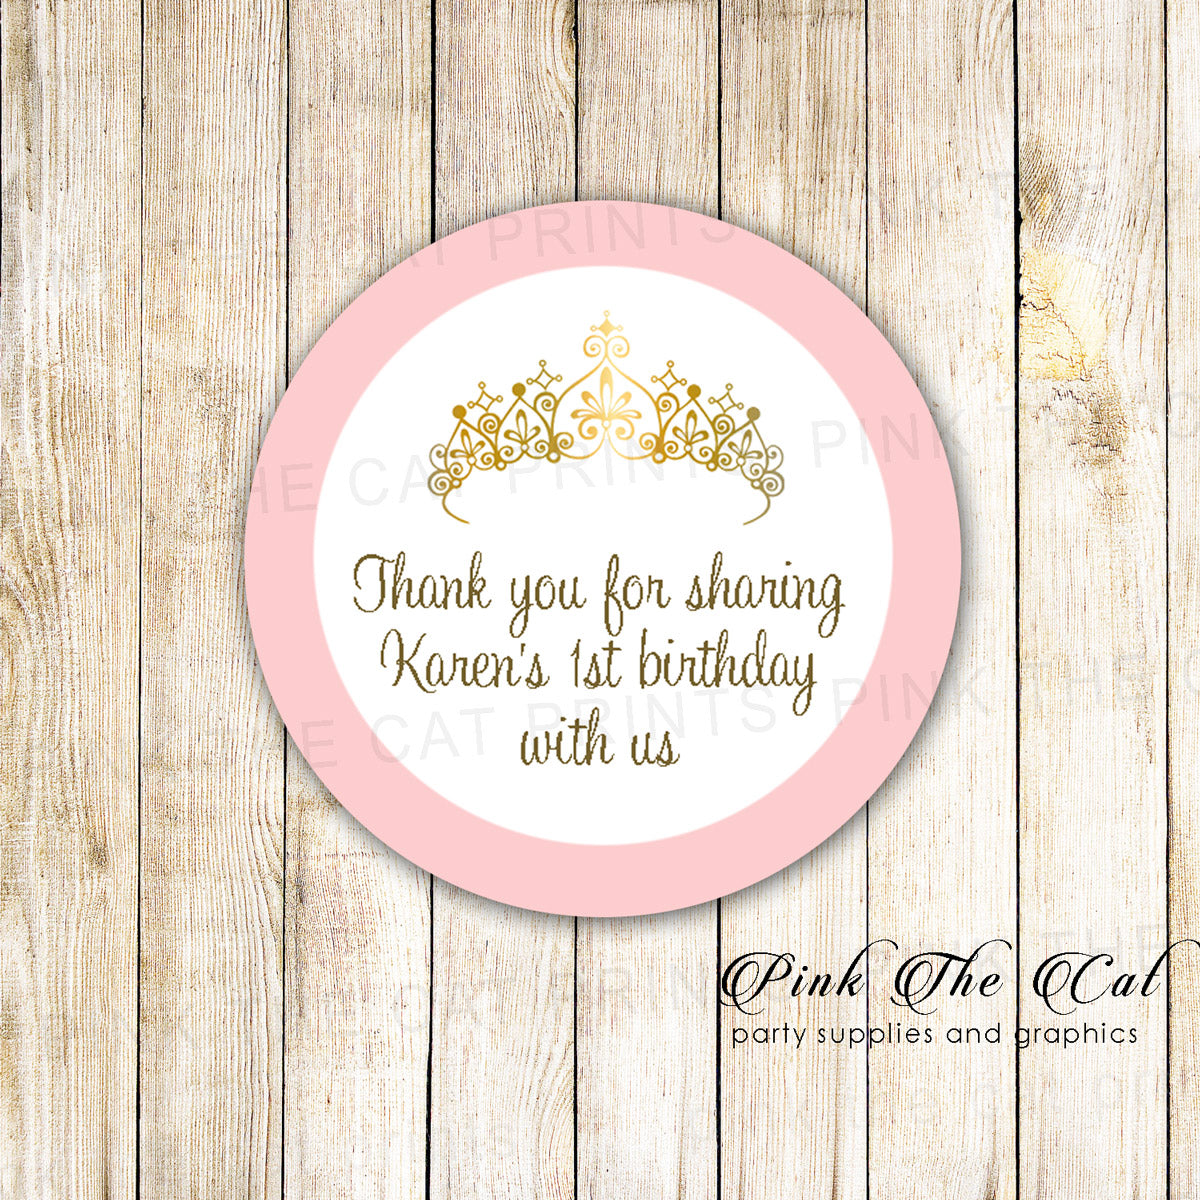 40 stickers princess label sticker birthday baby shower pink gold pink the cat